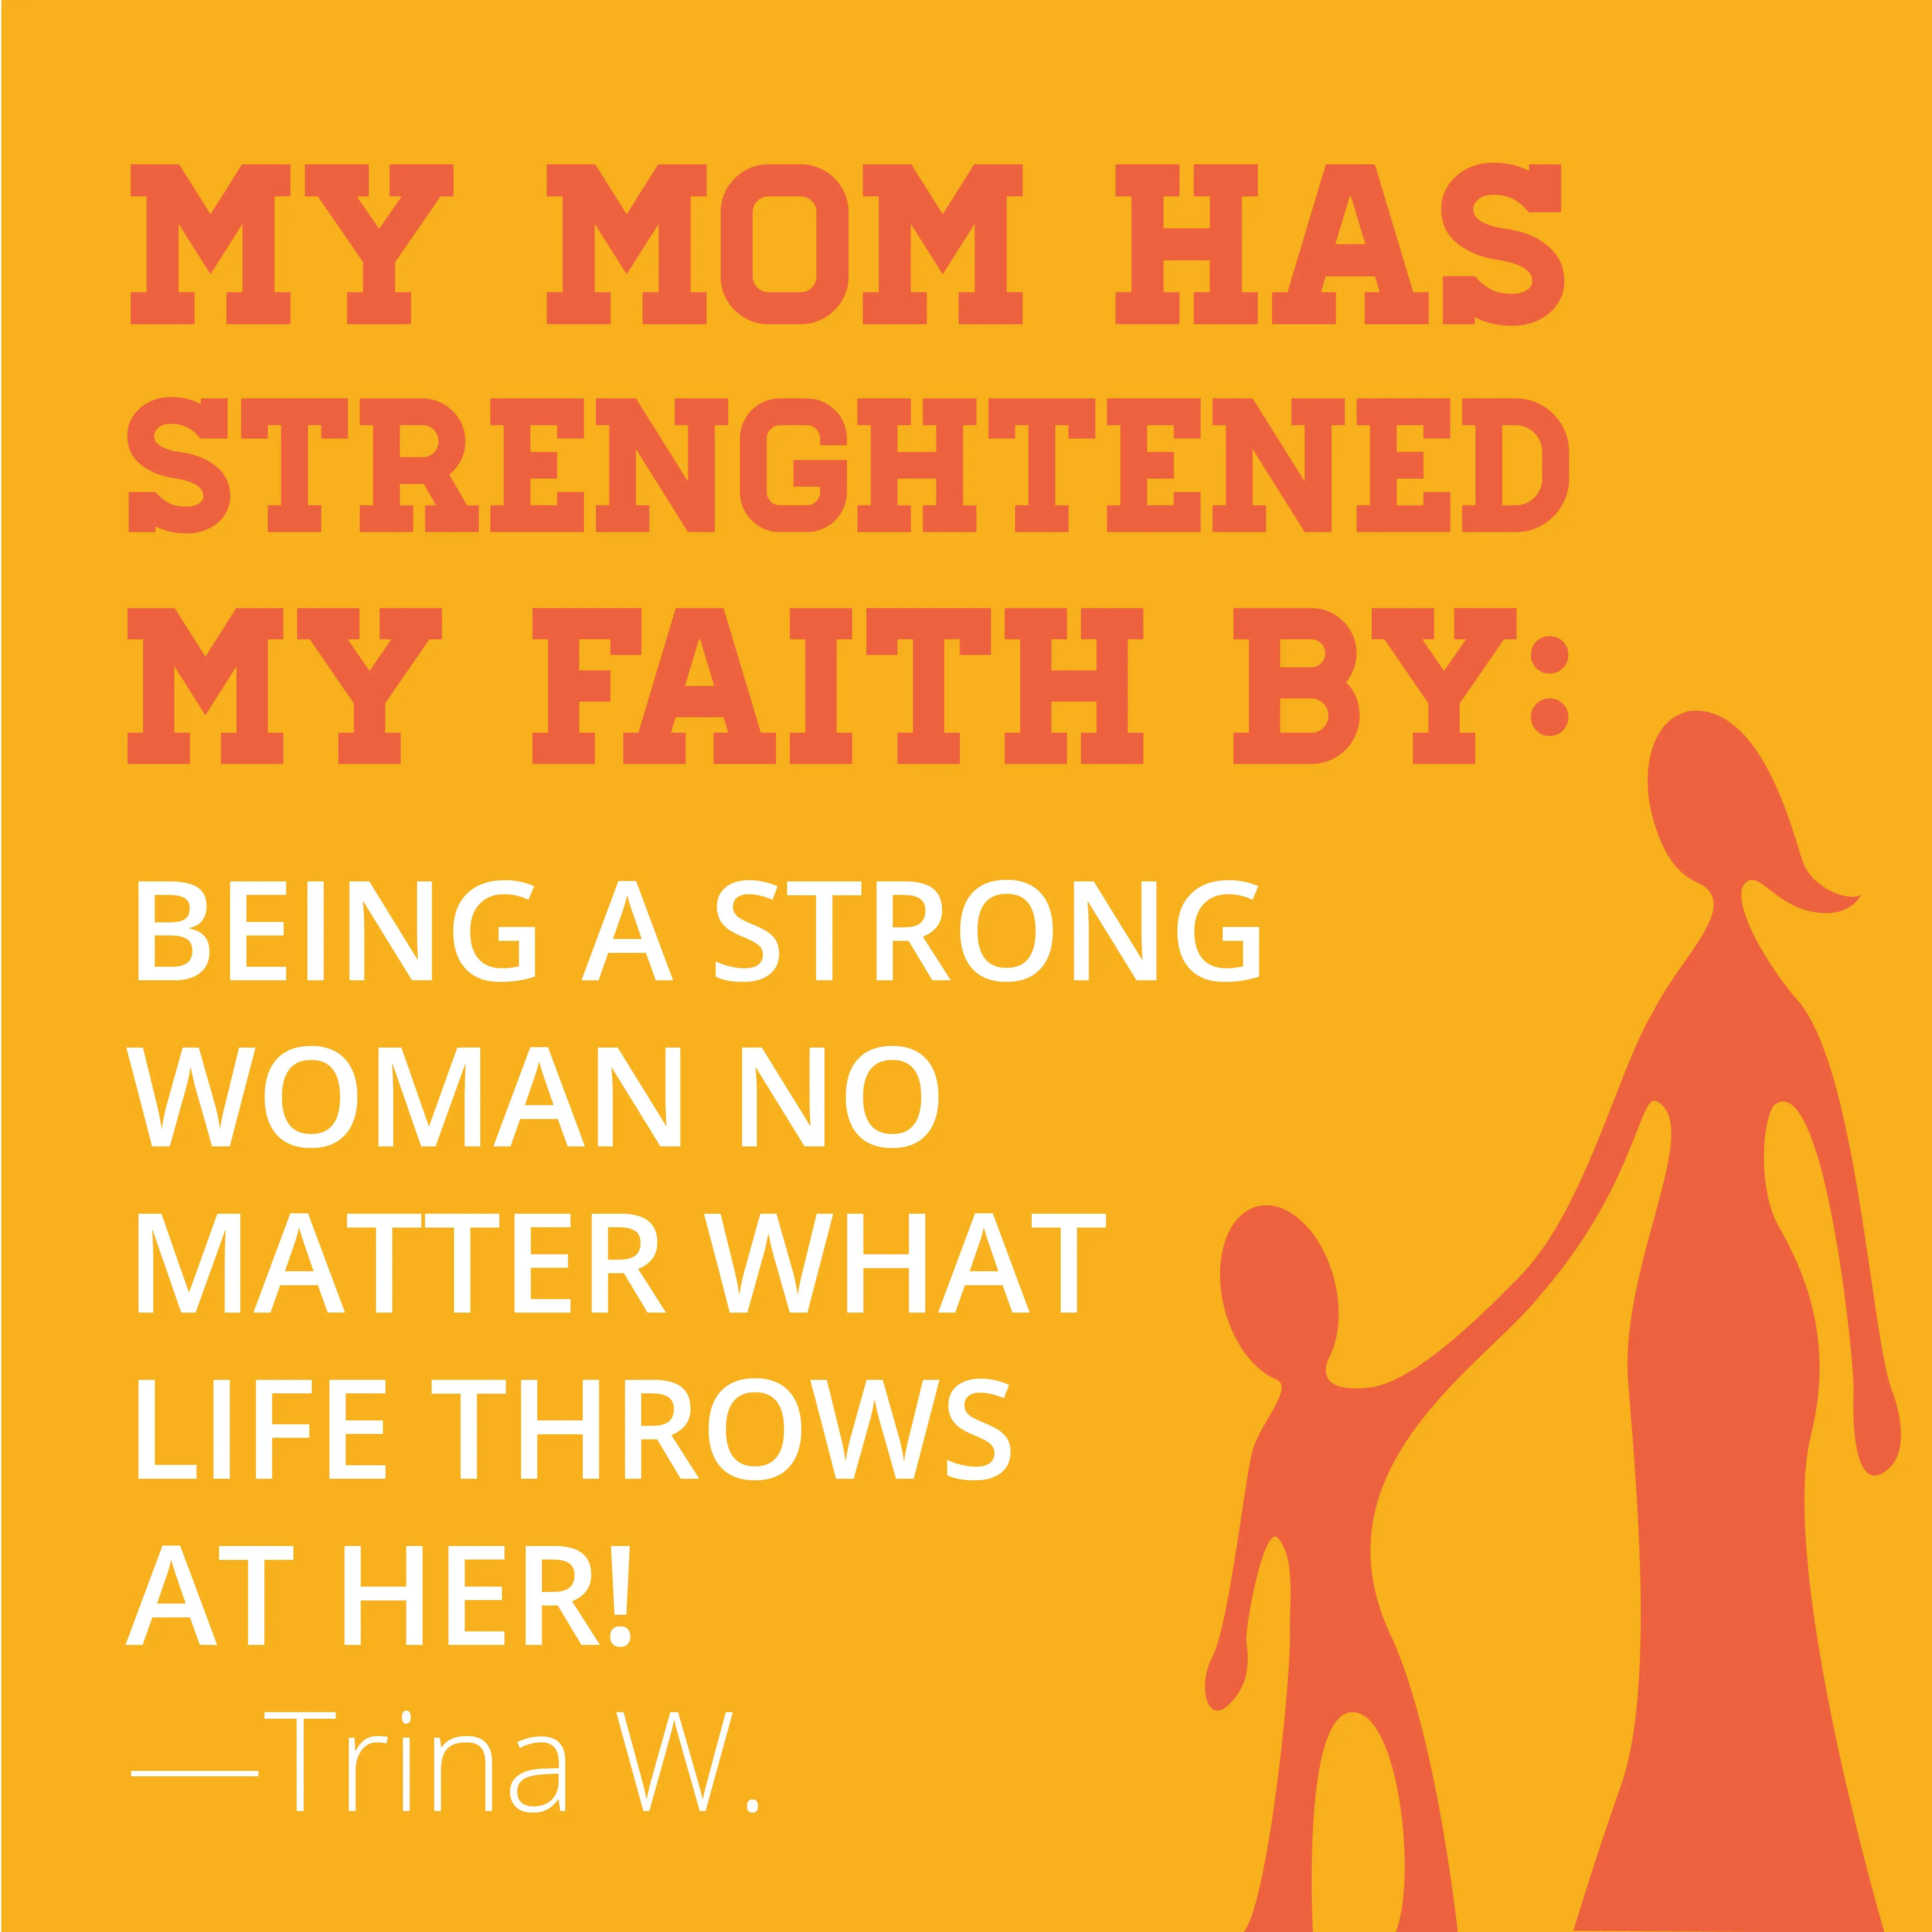 Quotes On True Love With Wallpaper How 50 Incredible Moms Strengthened Their Families